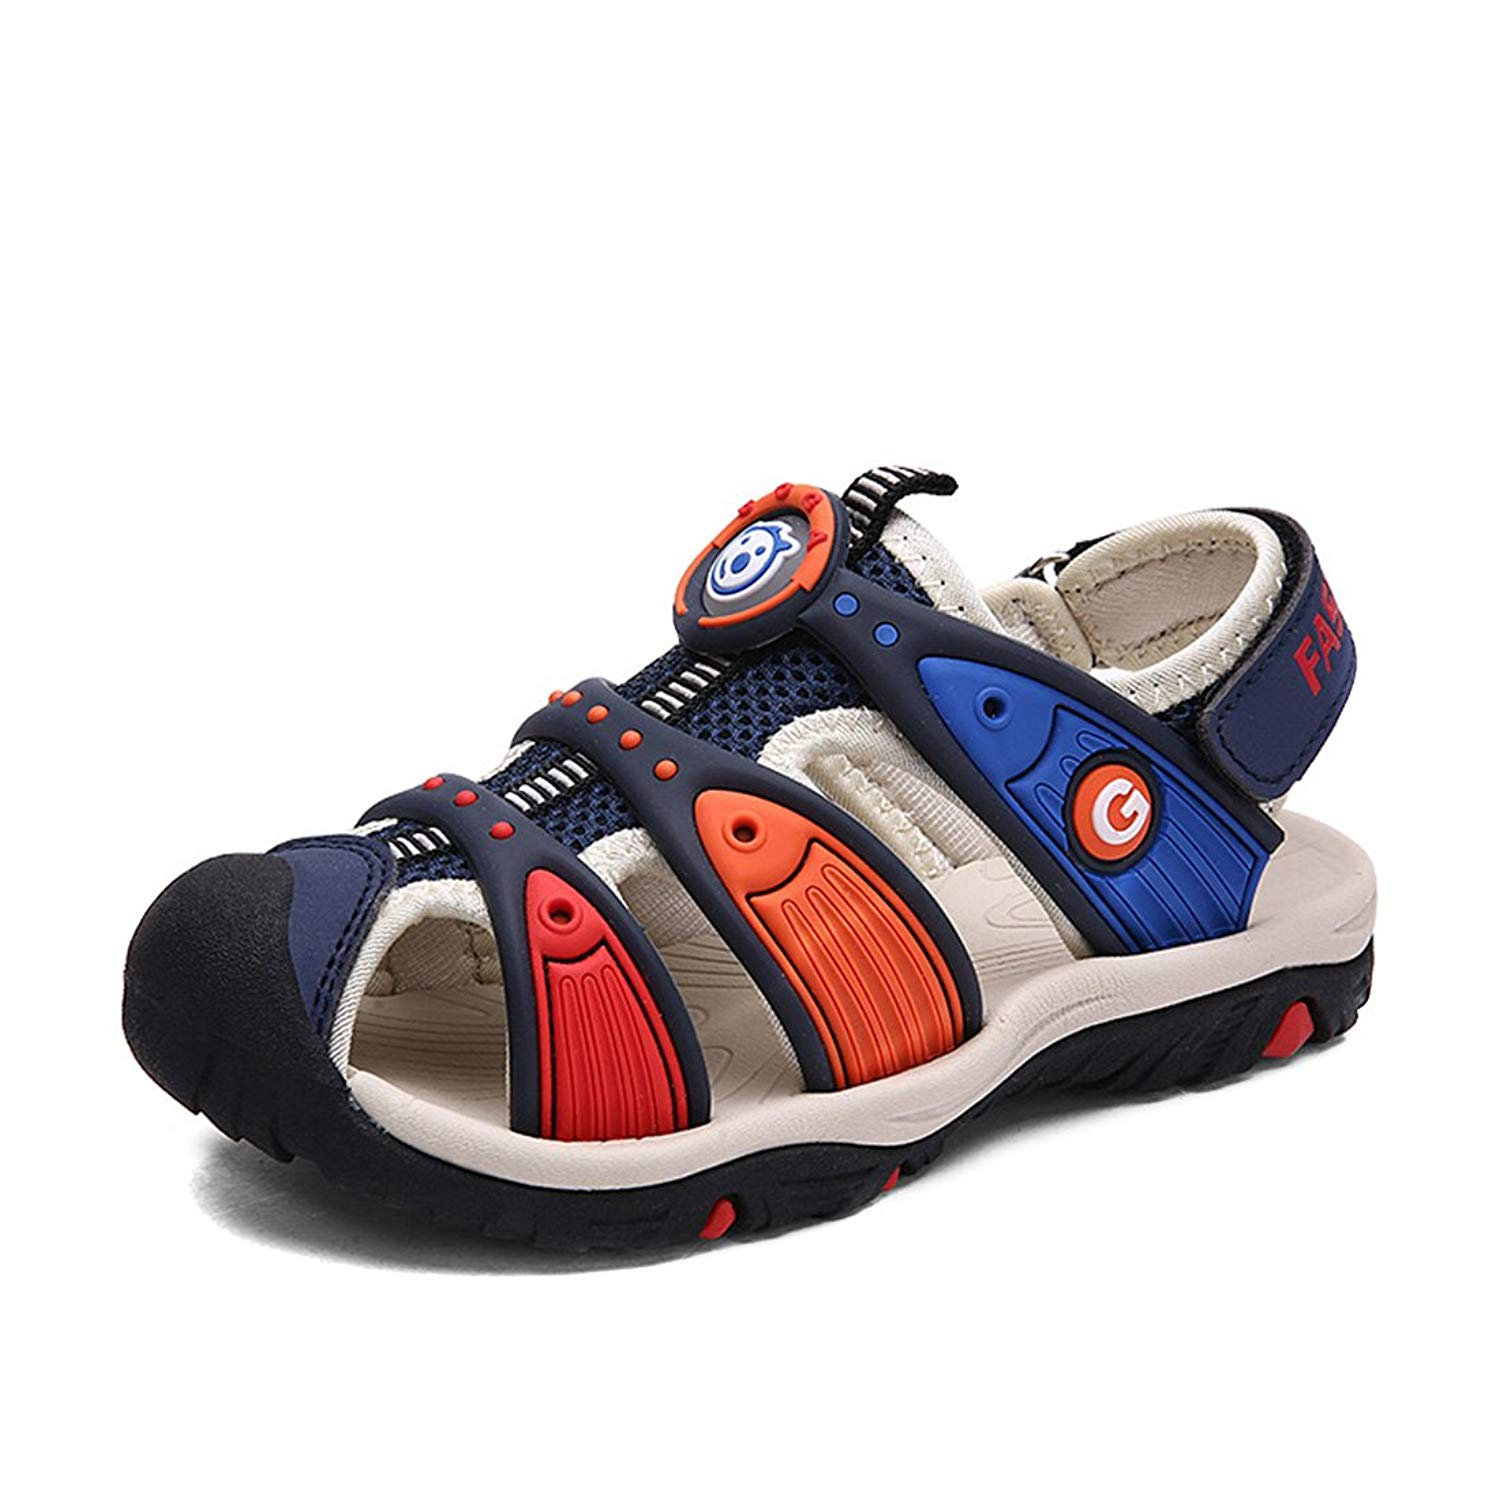 4facfb56bc Get Quotations · YIBLBOX Girls boys Summer Walking Shoes Outdoor Athletic  Sport Sandals(Toddler/Little Kid/